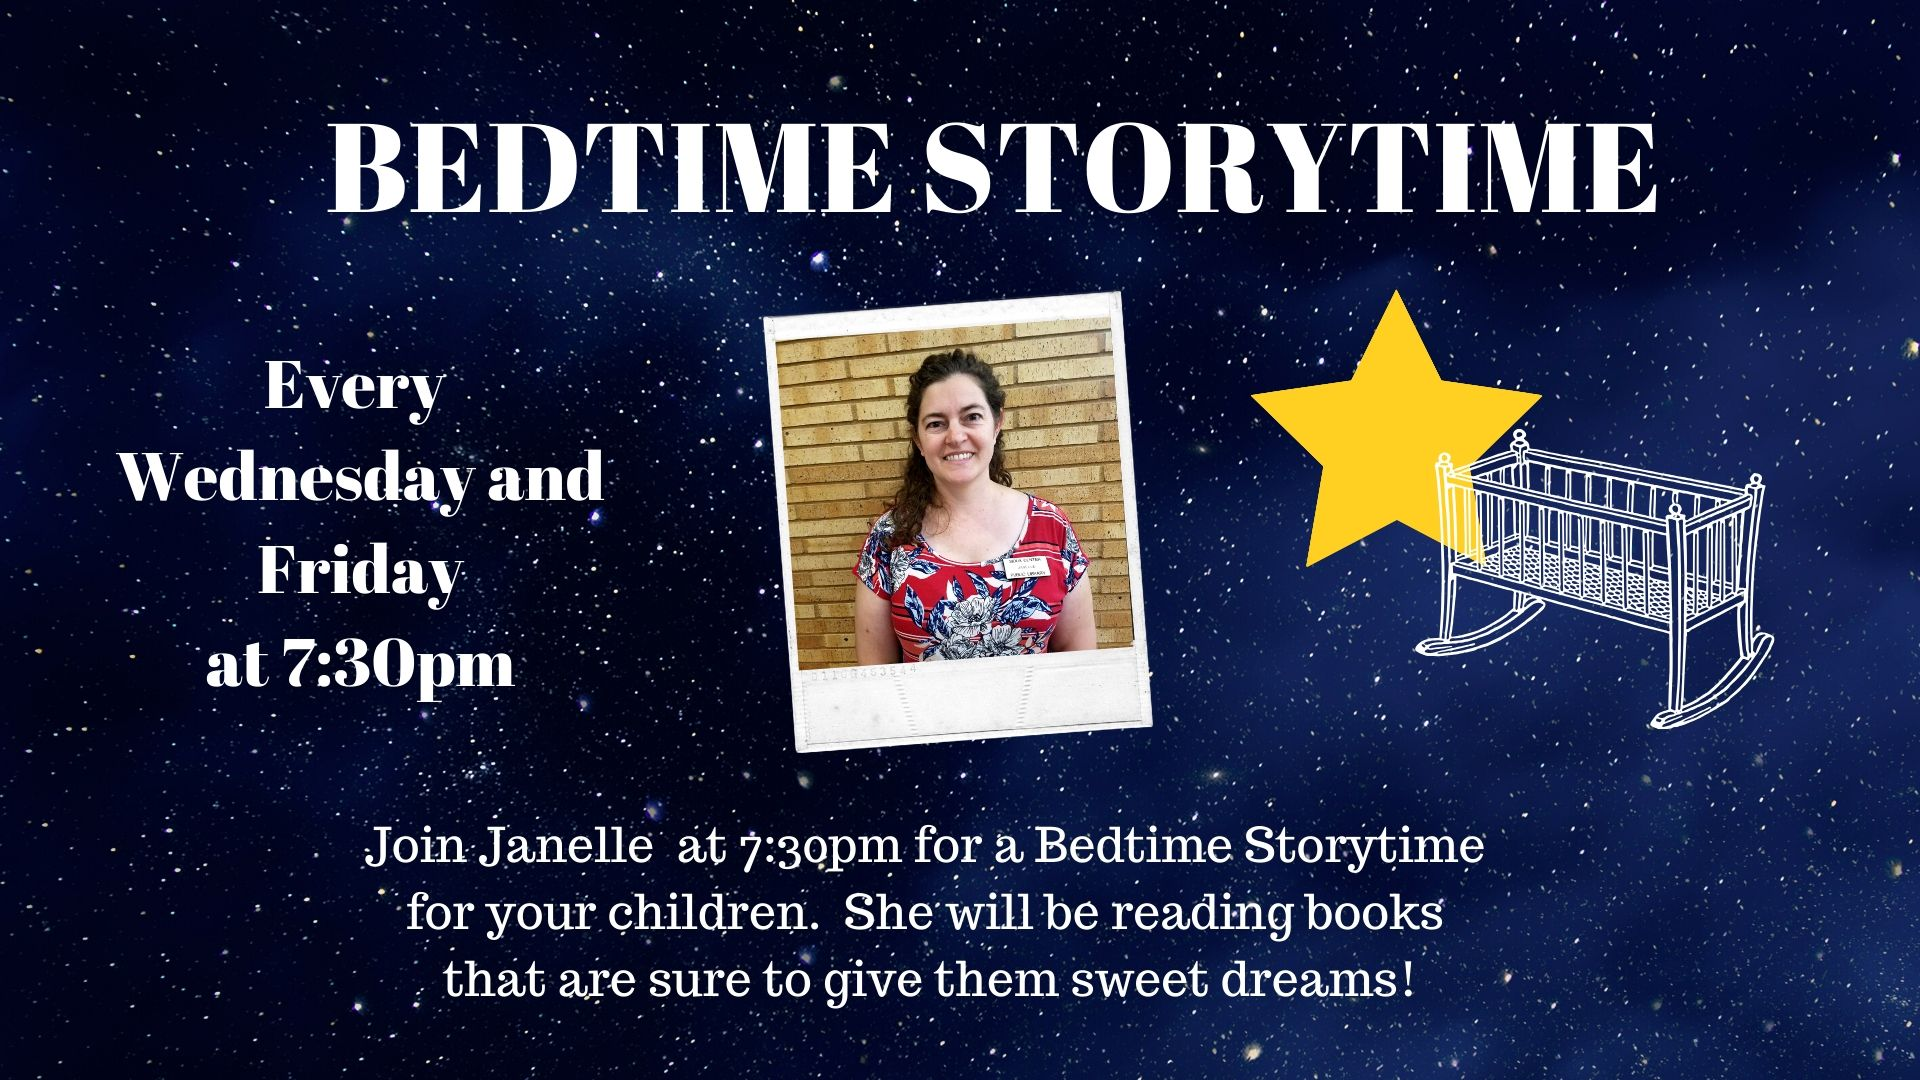 Bedtime storytime with Janelle